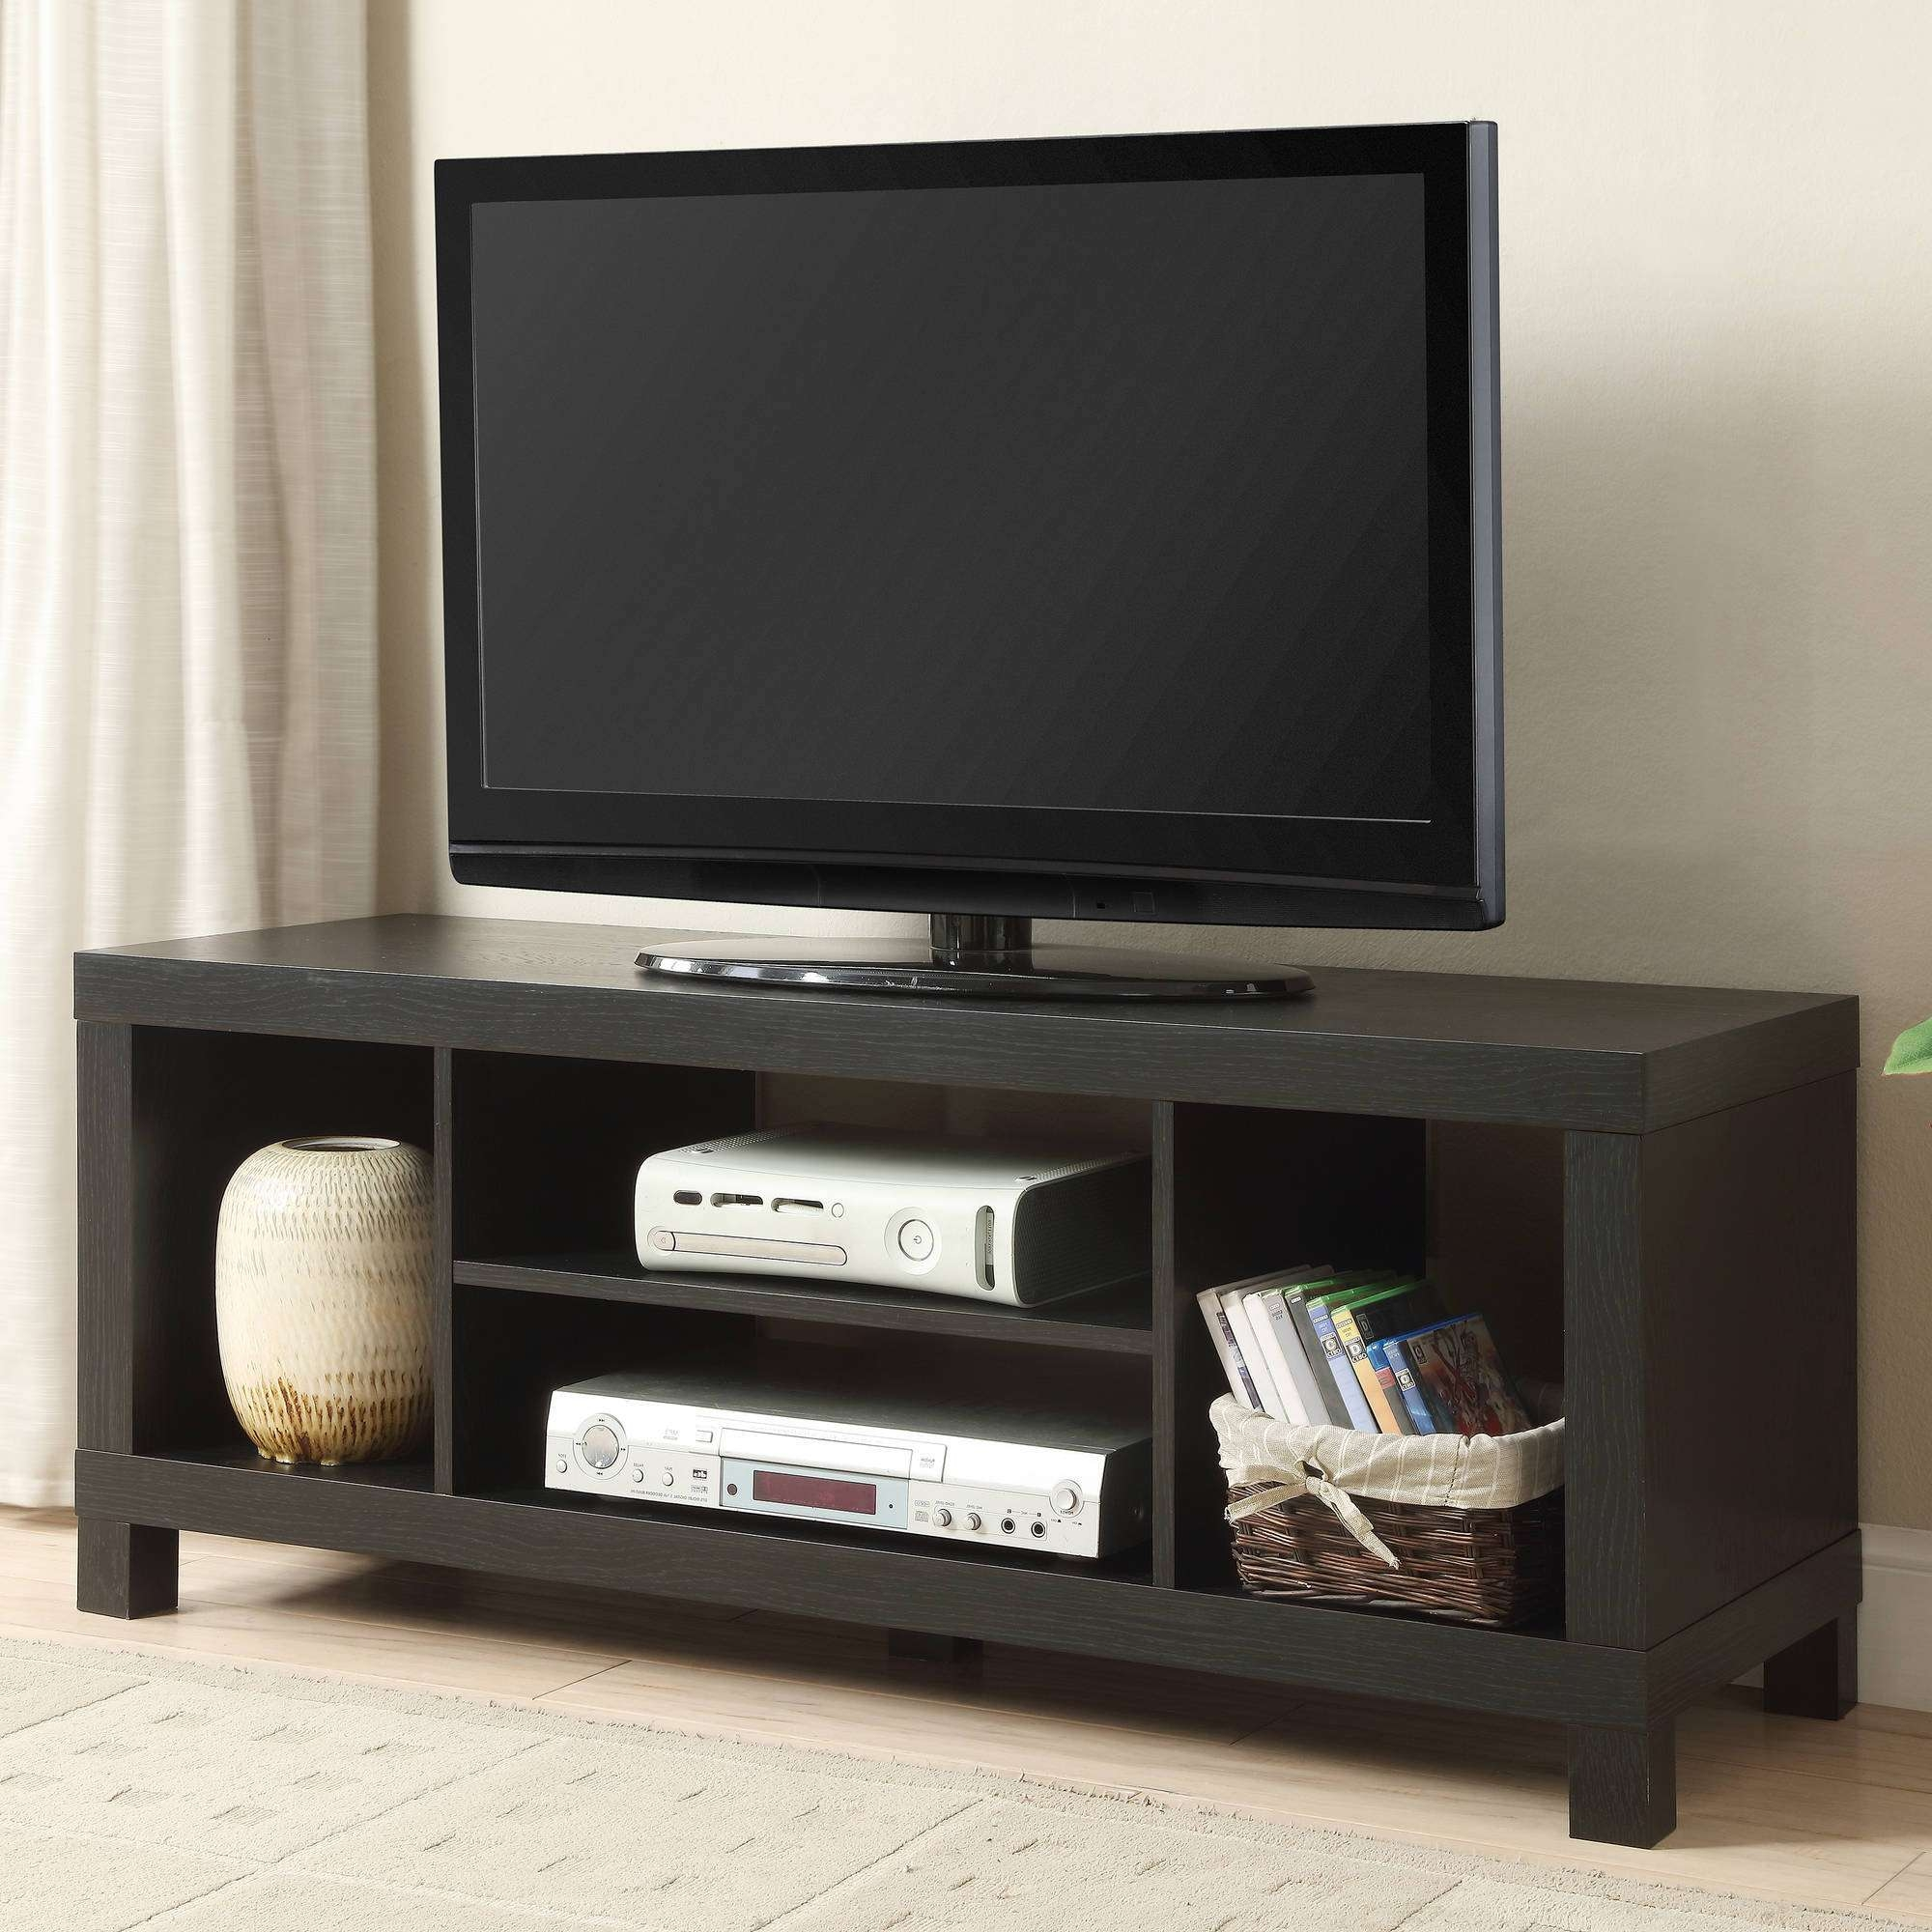 Tv Stands – Walmart Regarding Unique Tv Stands For Flat Screens (View 10 of 15)